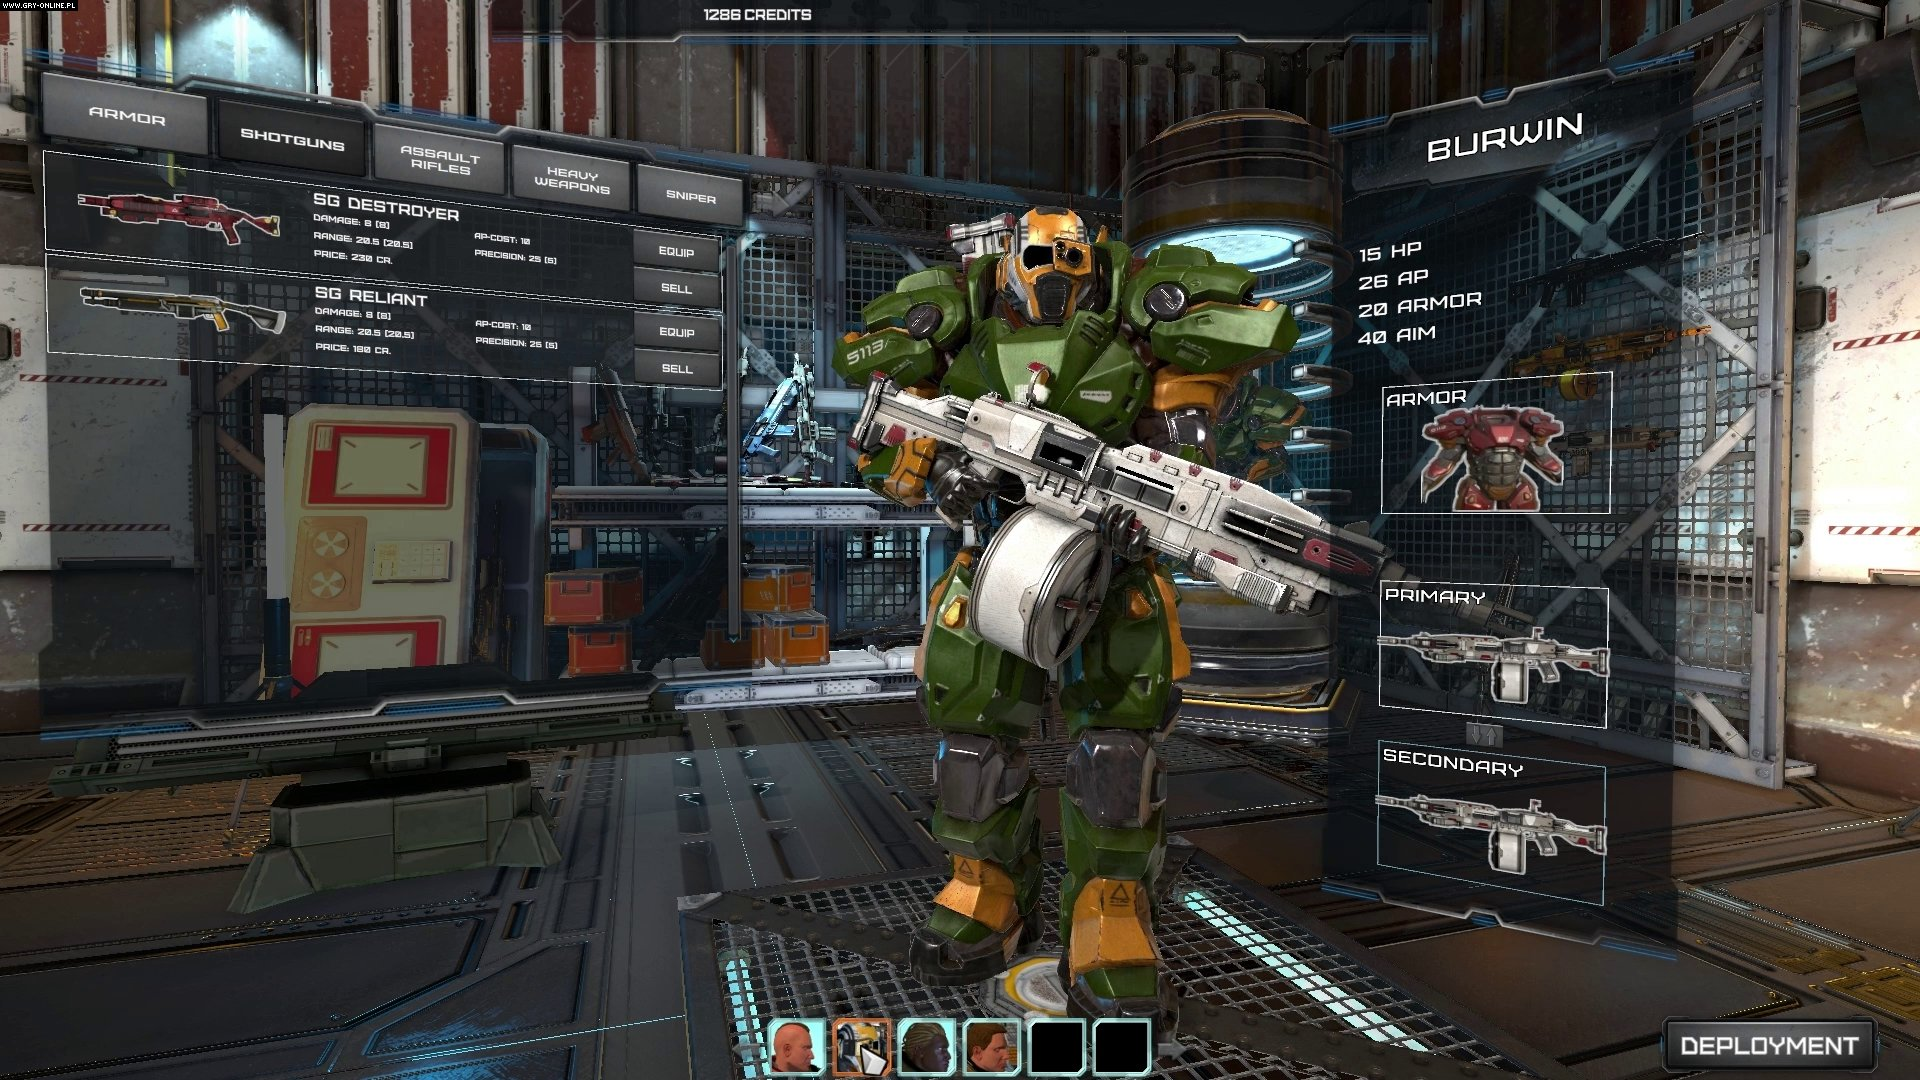 Shock Tactics PC Games Image 4/9, Point Blank Games, EuroVideo Medien